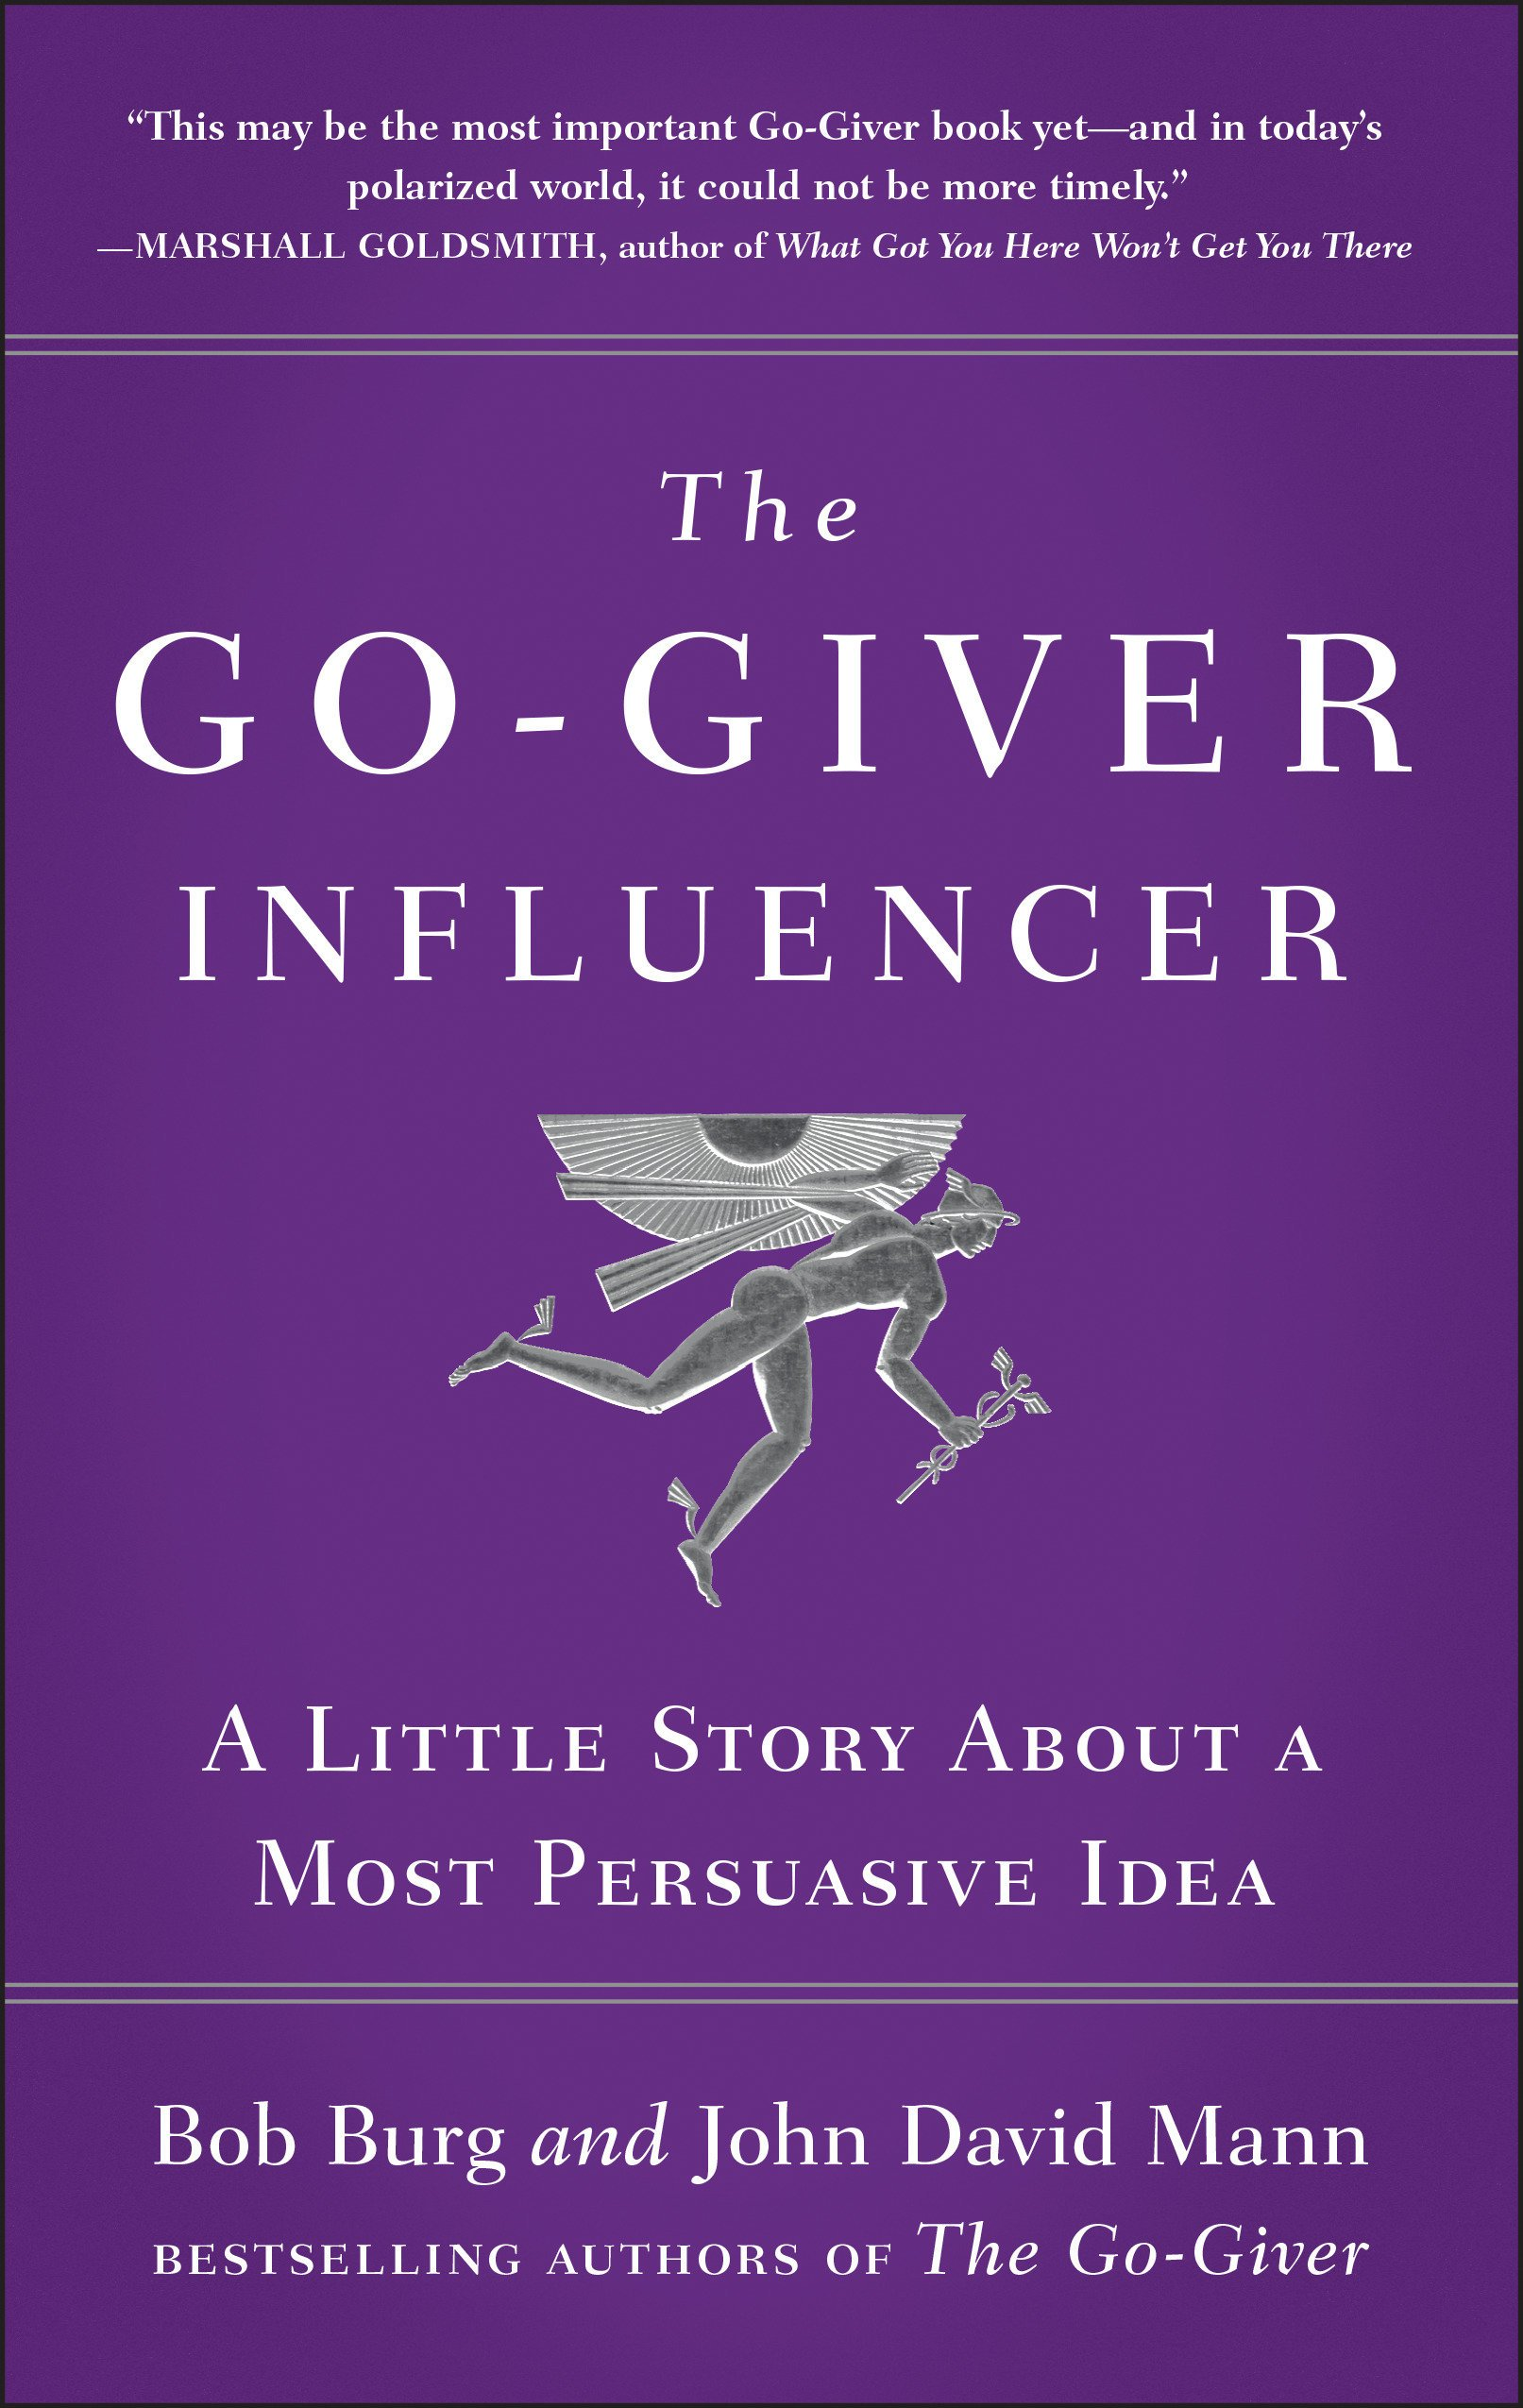 the go giver influencer a little story about a most persuasive idea